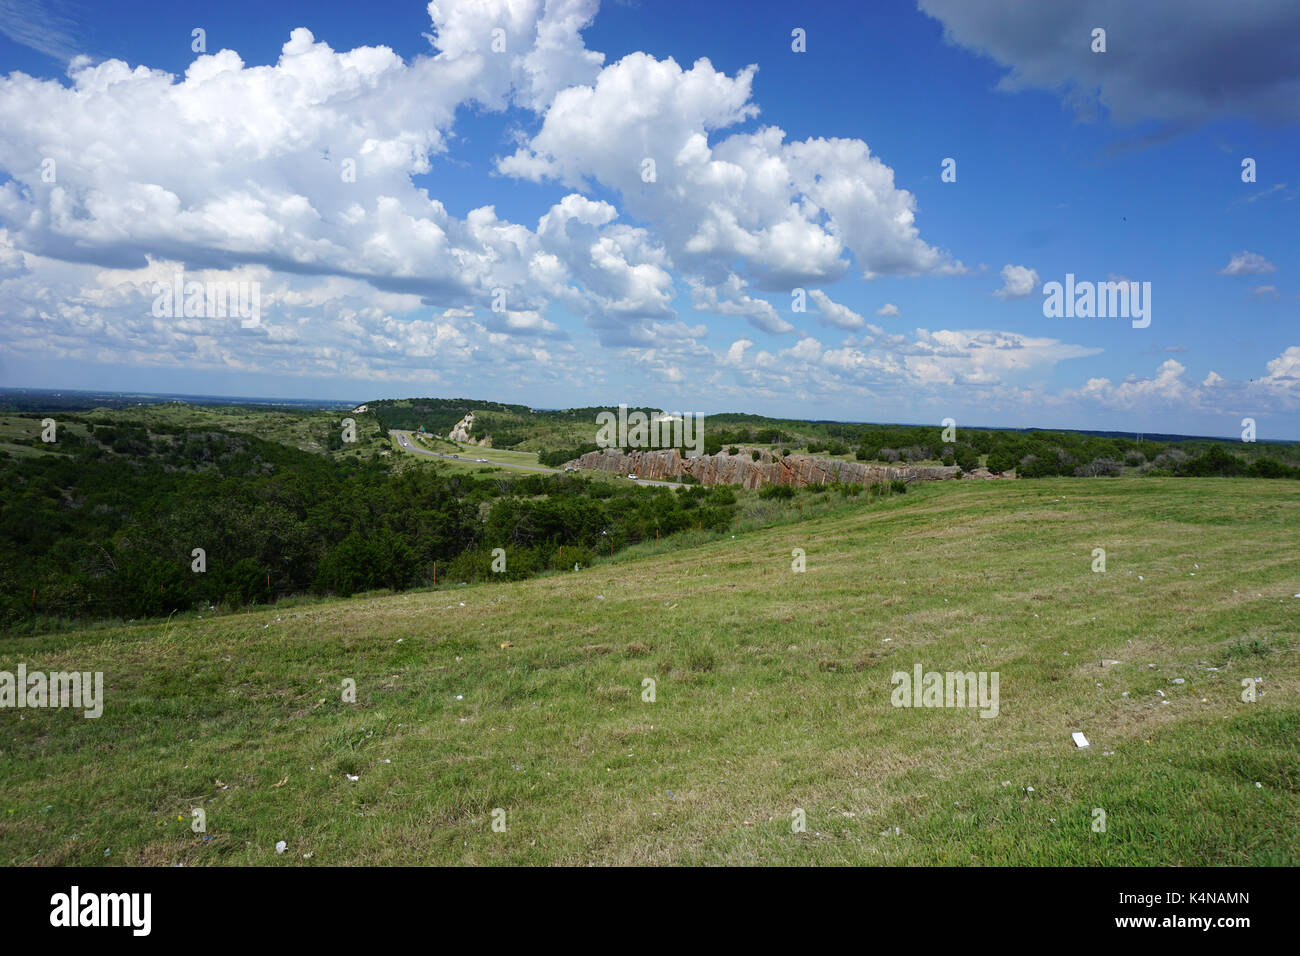 Puffy Clouds over a scenic turnout and rest area near Davis, OK - Stock Image